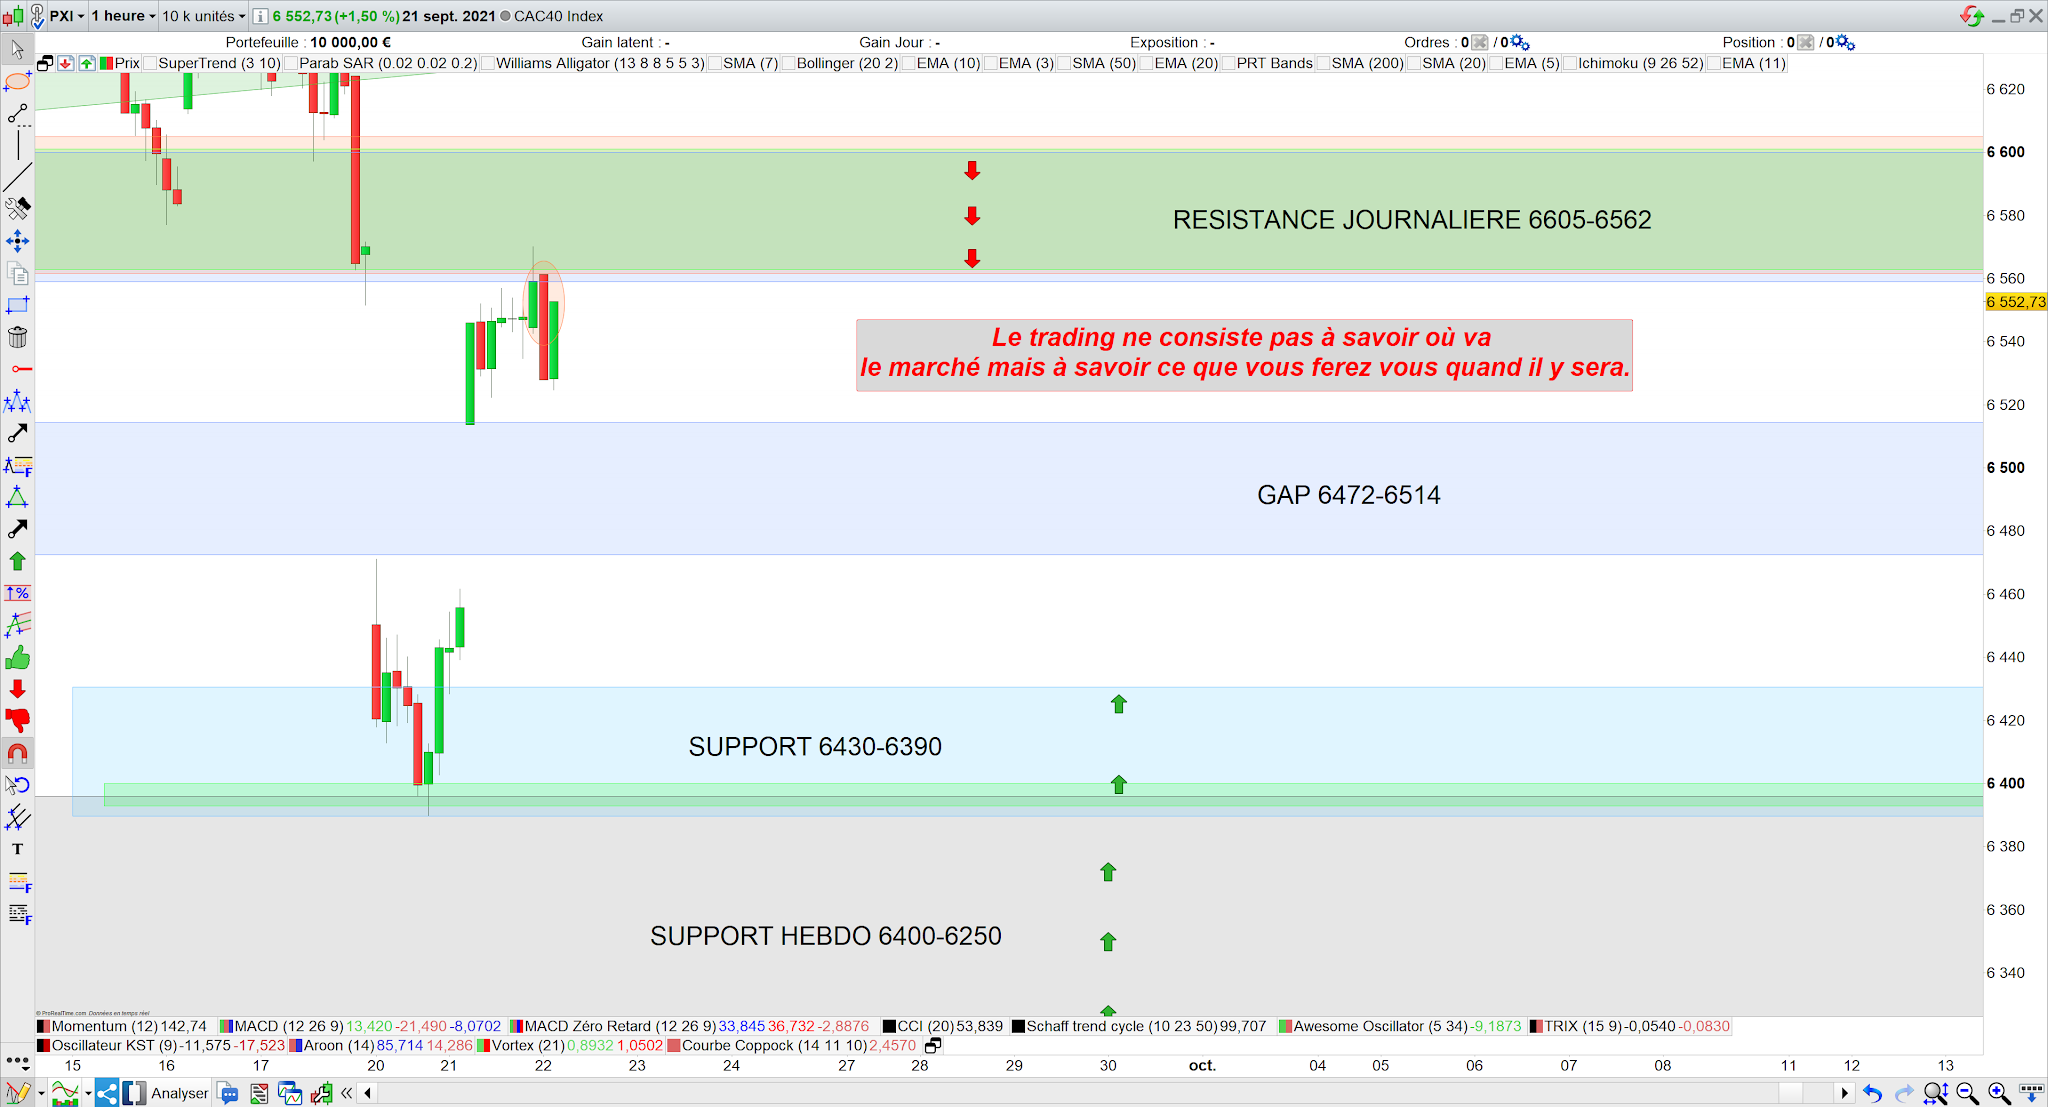 Trading cac40 22/09/21